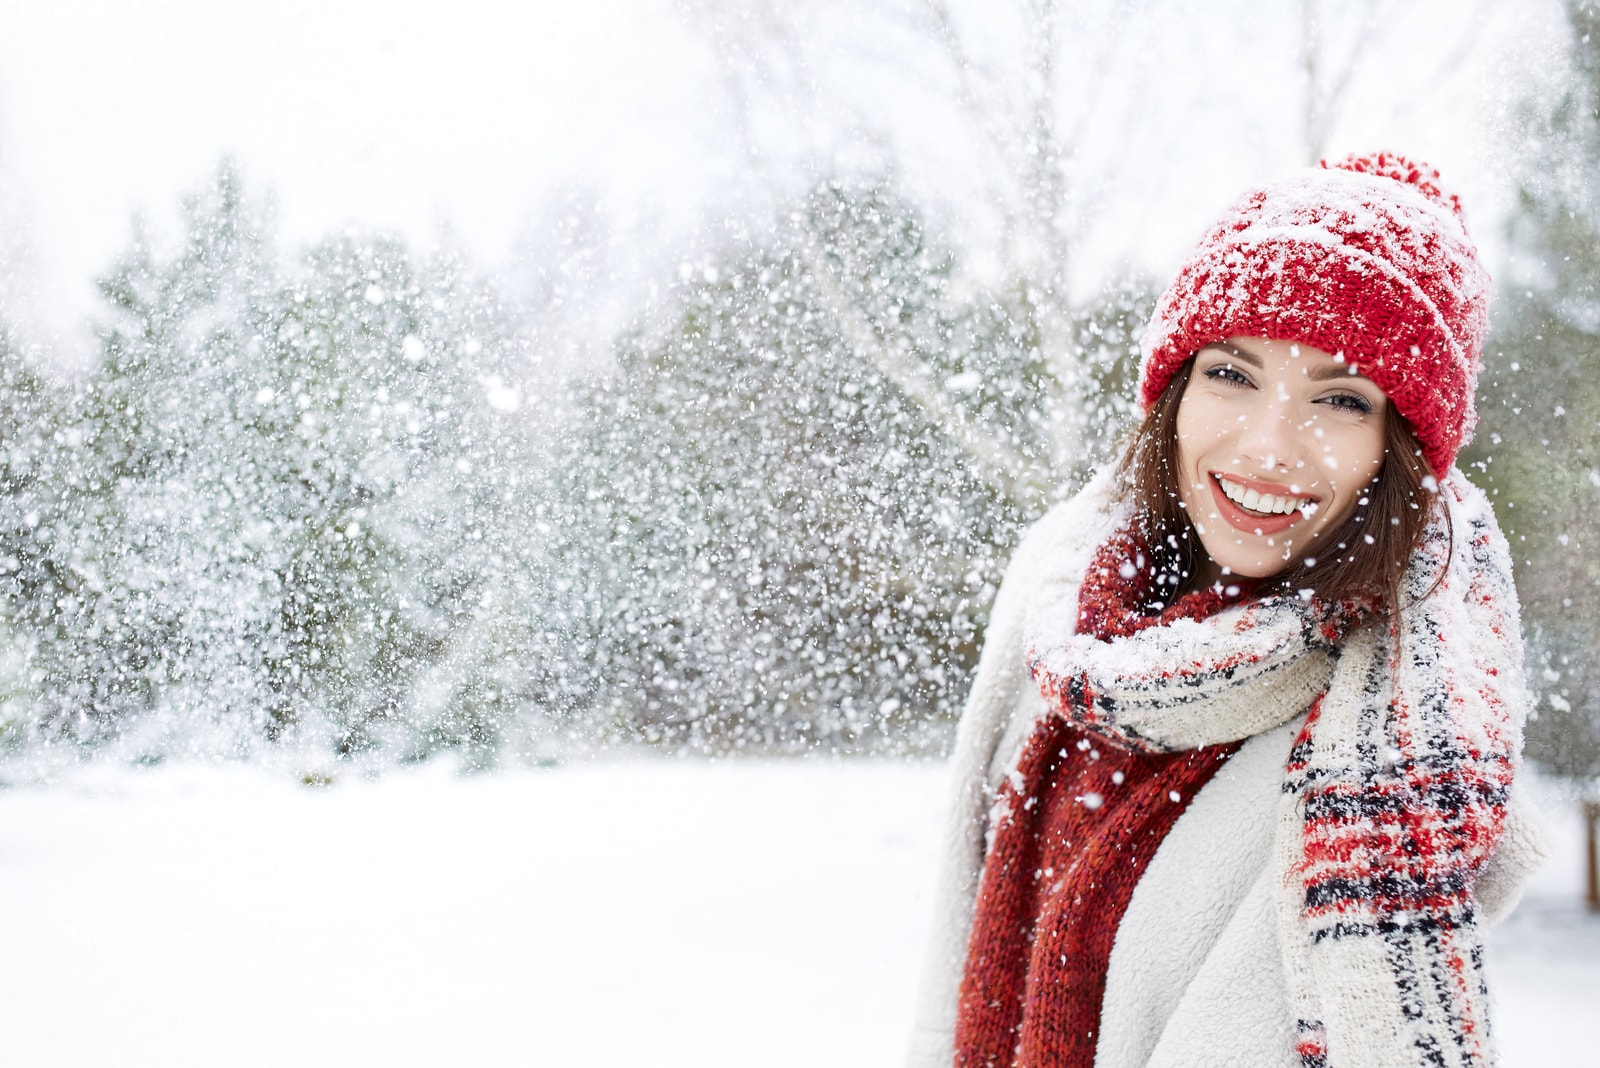 portrait of a smiling girl in the snow outside